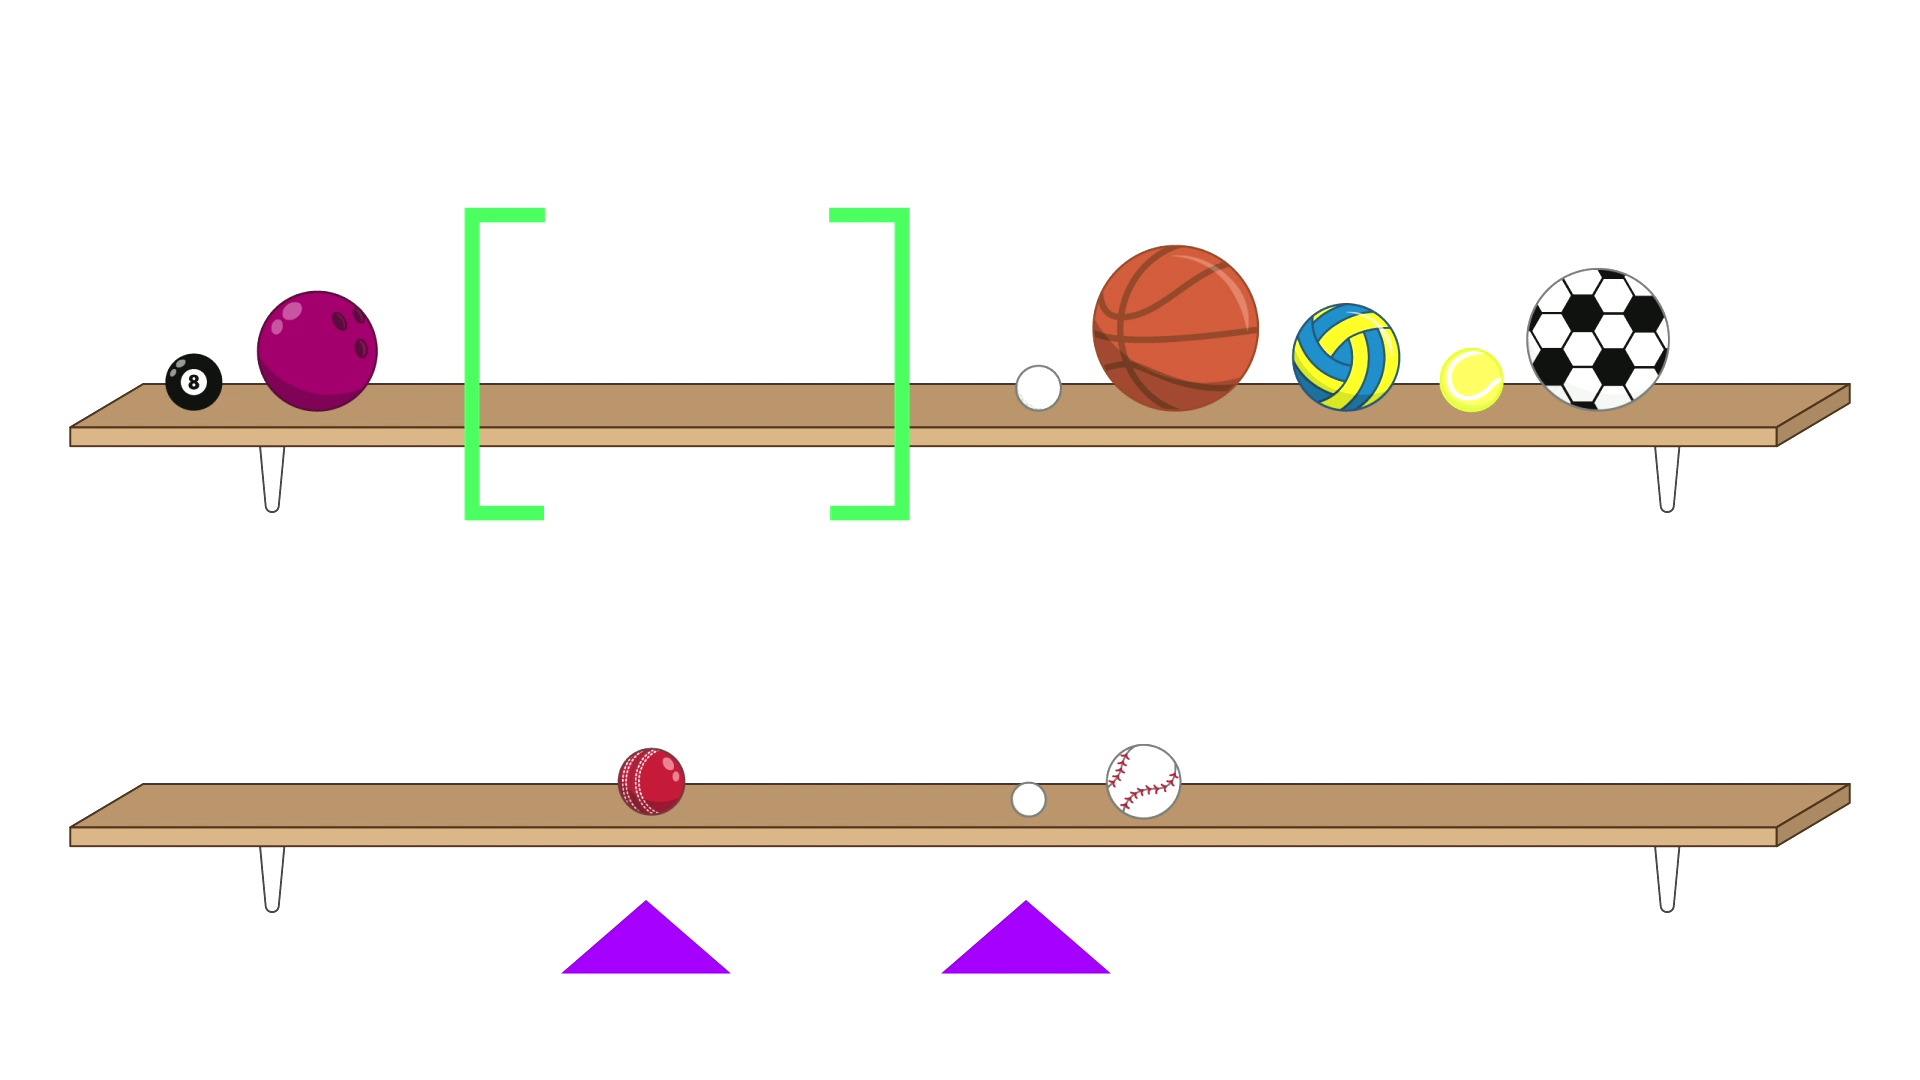 There are 8 balls on the top shelf. The pool ball is first, followed by the bowling ball. There is then some empty space contained within a pair of green brackets. After the brackets are the remaining five balls: a golf ball, a basketball, a netball, a tennis ball and a soccer ball. On the bottom shelf are two groups of balls, the first containing just the cricket ball. The other contains the ping-pong ball and the baseball. A purple arrow points at the first ball in each groupon the bottom shelf: the cricket ball and the ping-pong ball.